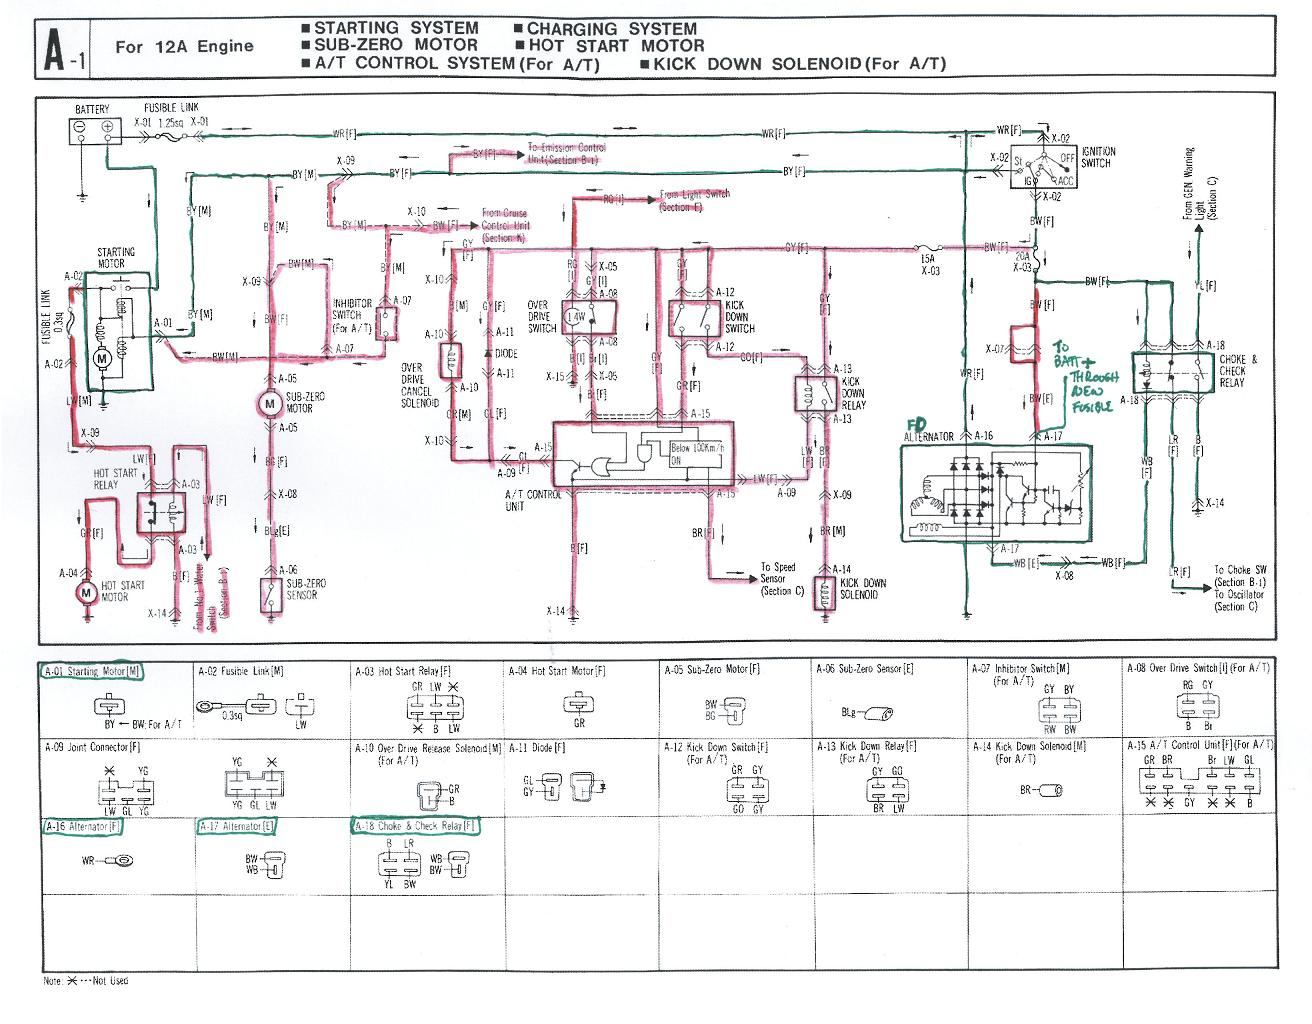 Kw T600 Wiring Diagram Ladder Schematics Begeboy Wiring Diagram Source